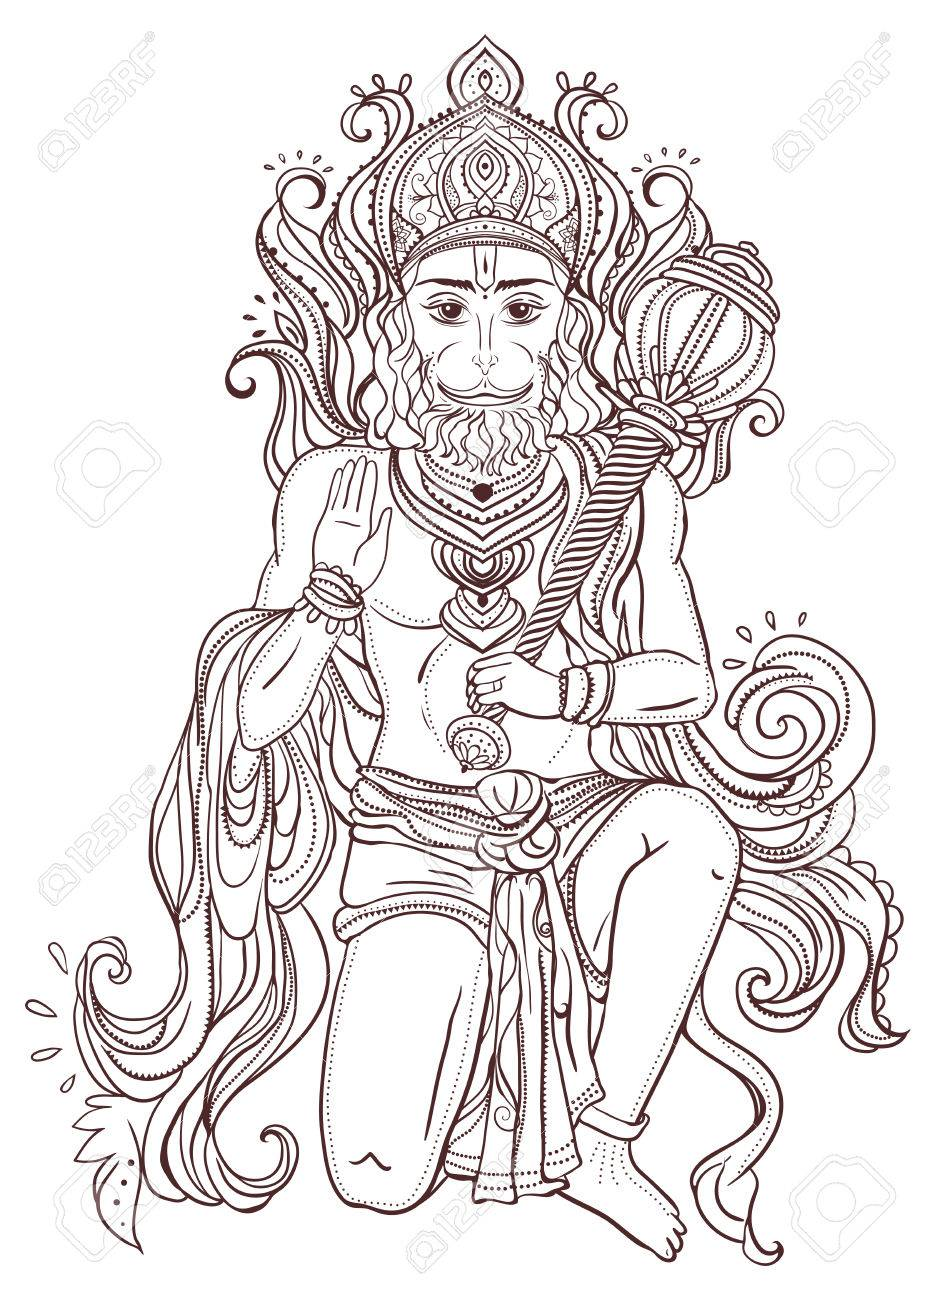 Ornament card with of Lord Hanuman. Illustration of Happy Dussehra.